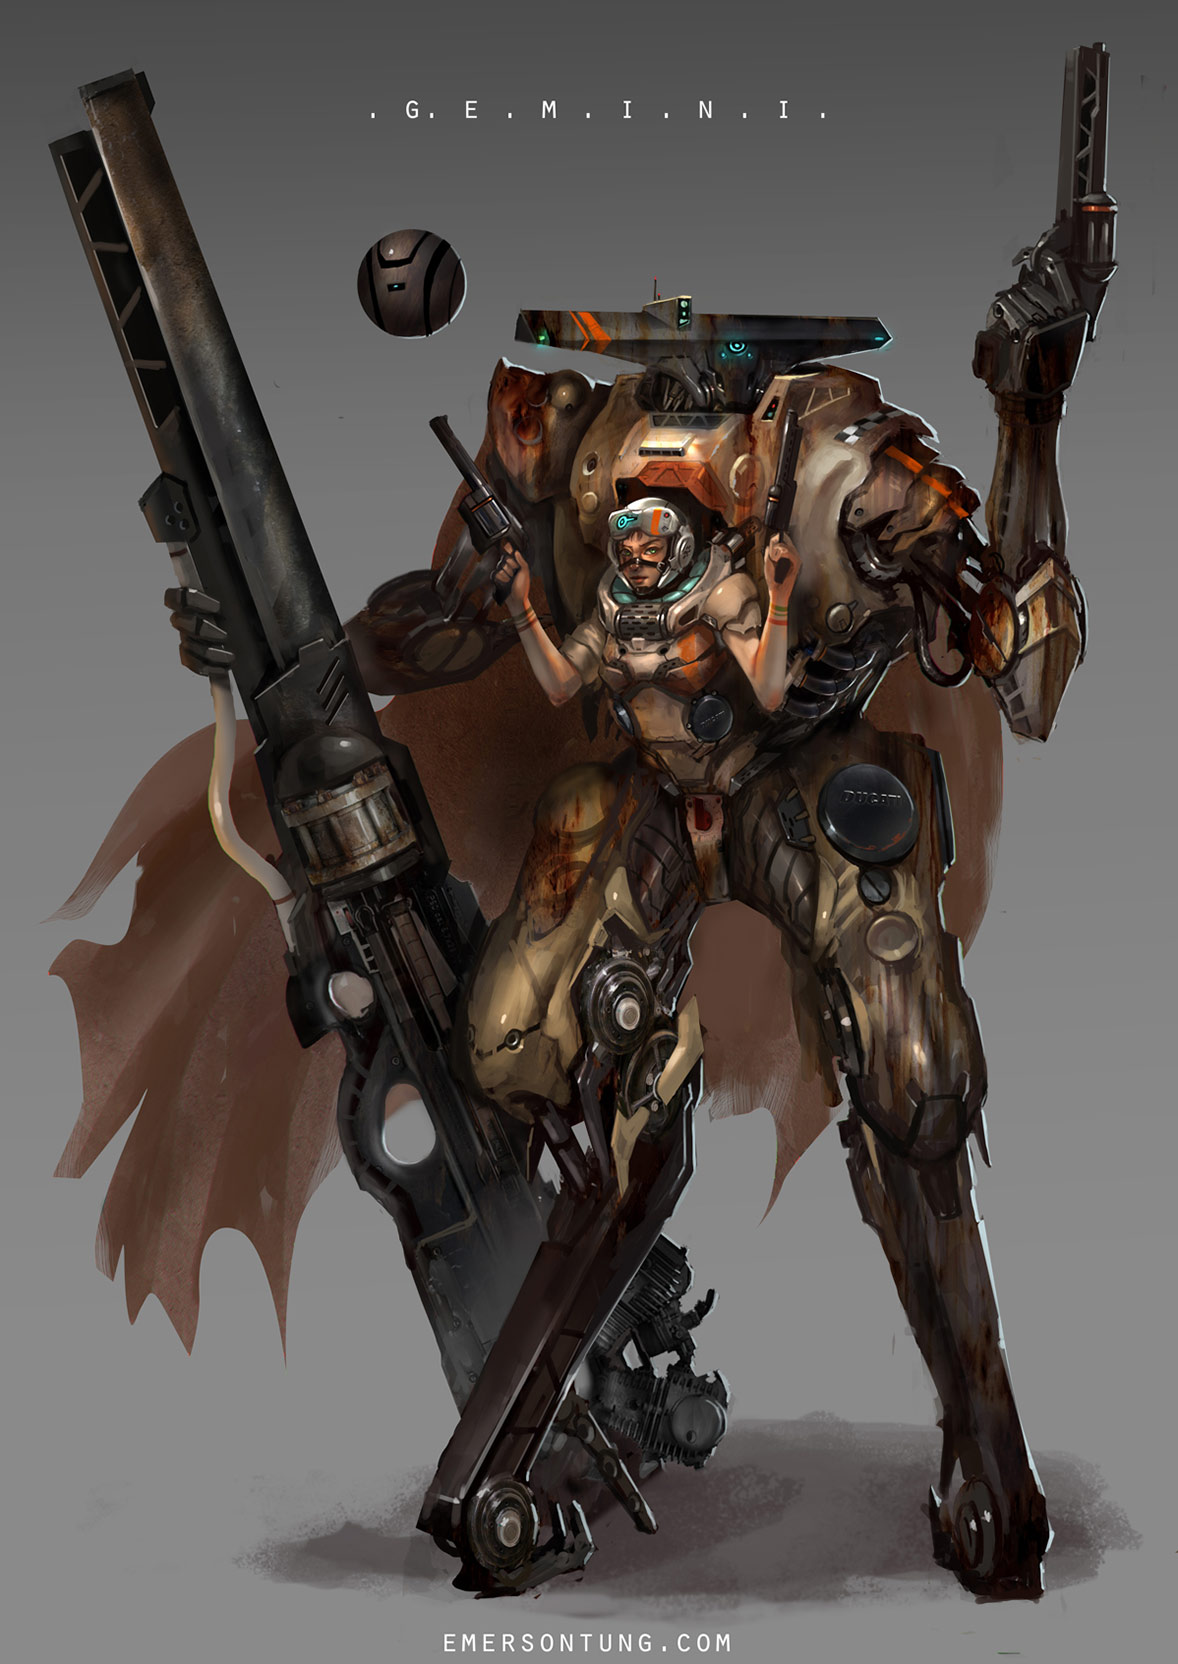 Concept robots by Emerson Tung